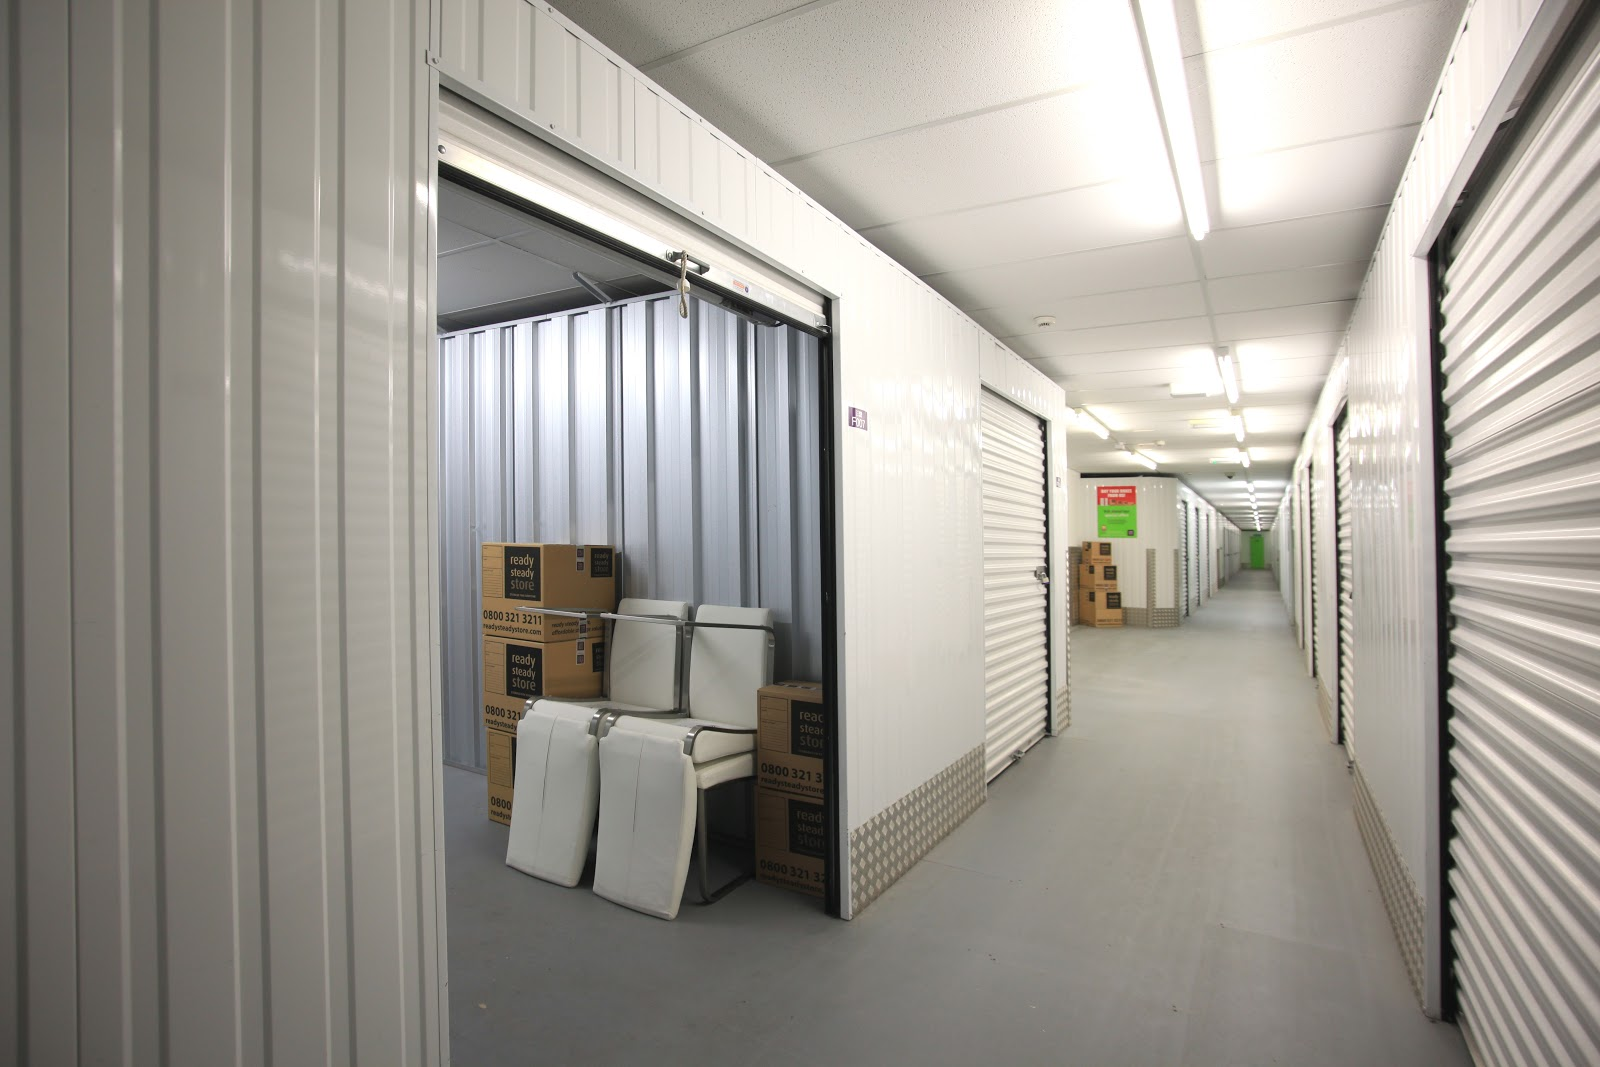 Self storage prices explained: how much does storage cost?